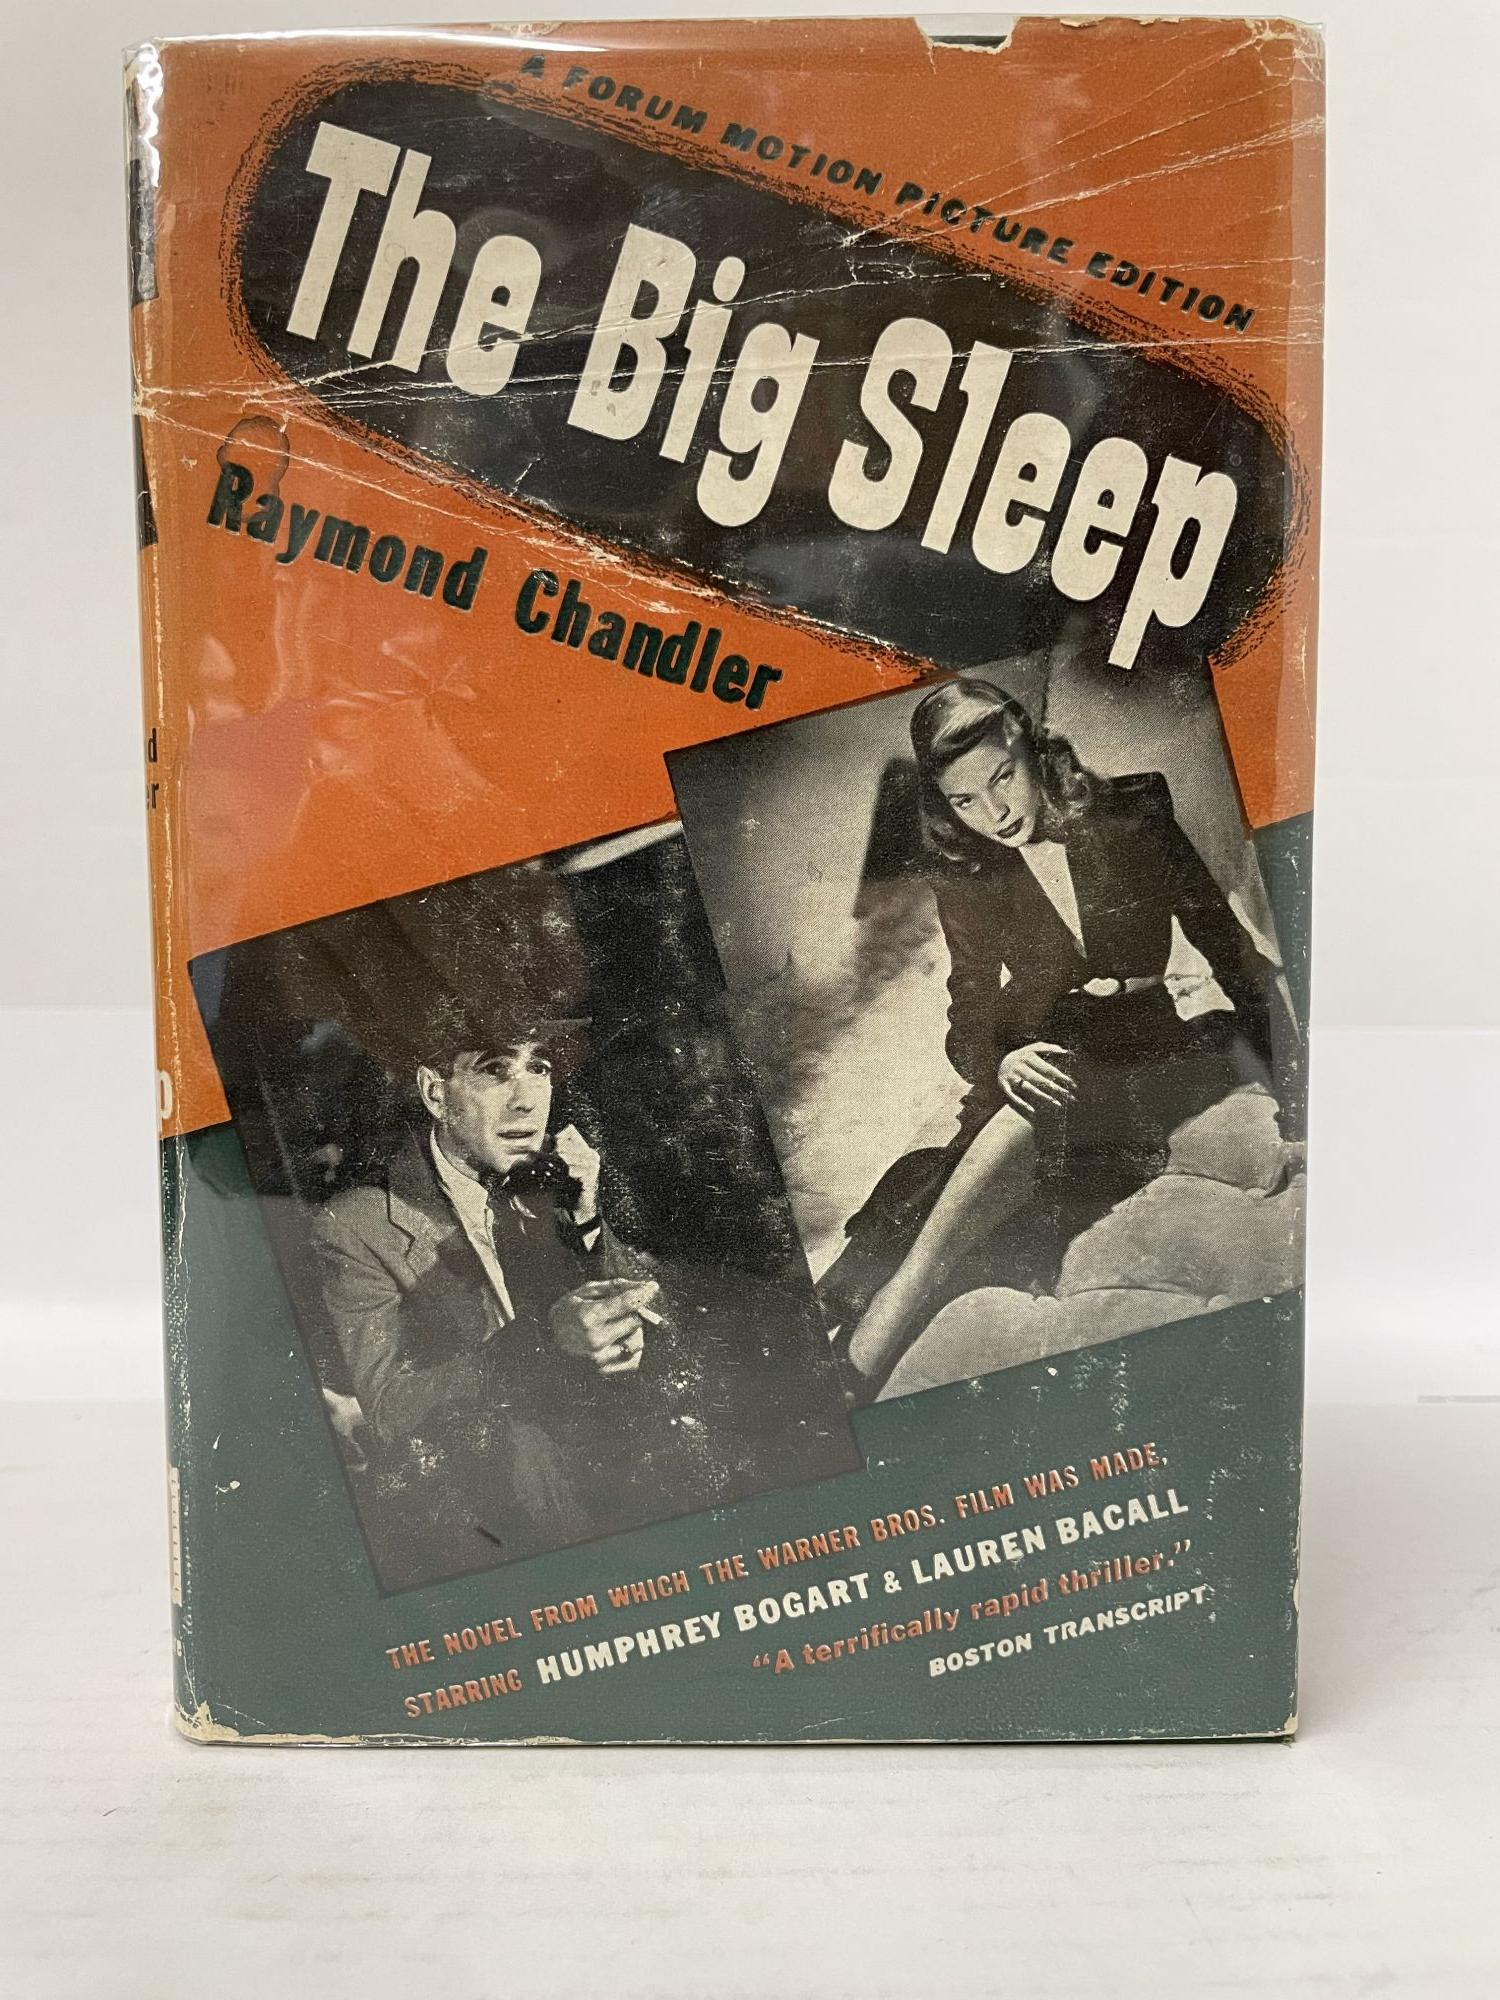 THE BIG SLEEP (A FORUM MOTION PICTURE EDITION). Raymond Chandler, 1888 - 1959.